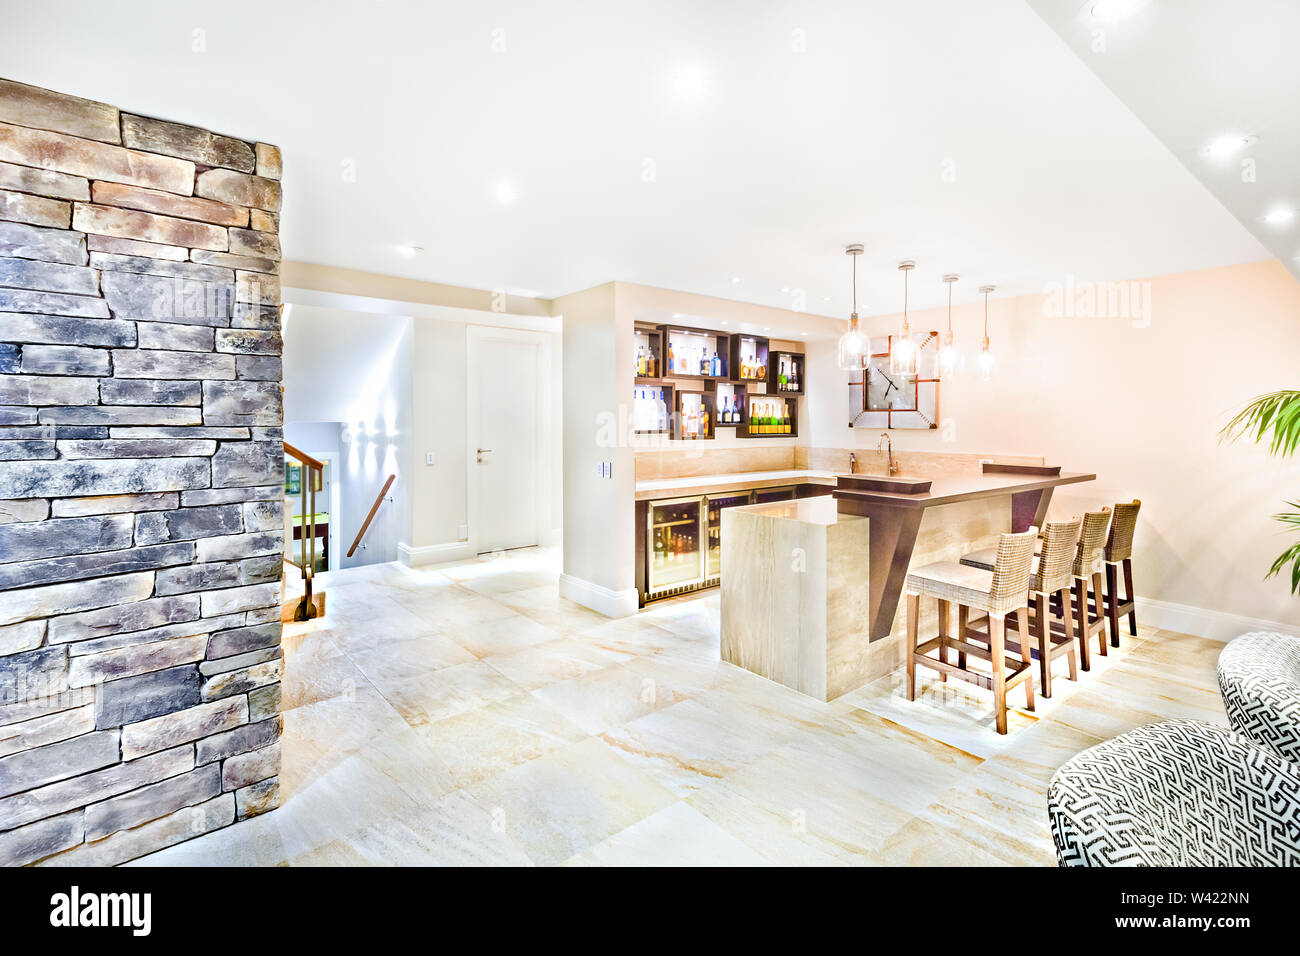 Living room including dining area with furniture, floor is tiled, sink can see on the table, vine bottles in wall cupboards, perfect lights balancing, Stock Photo